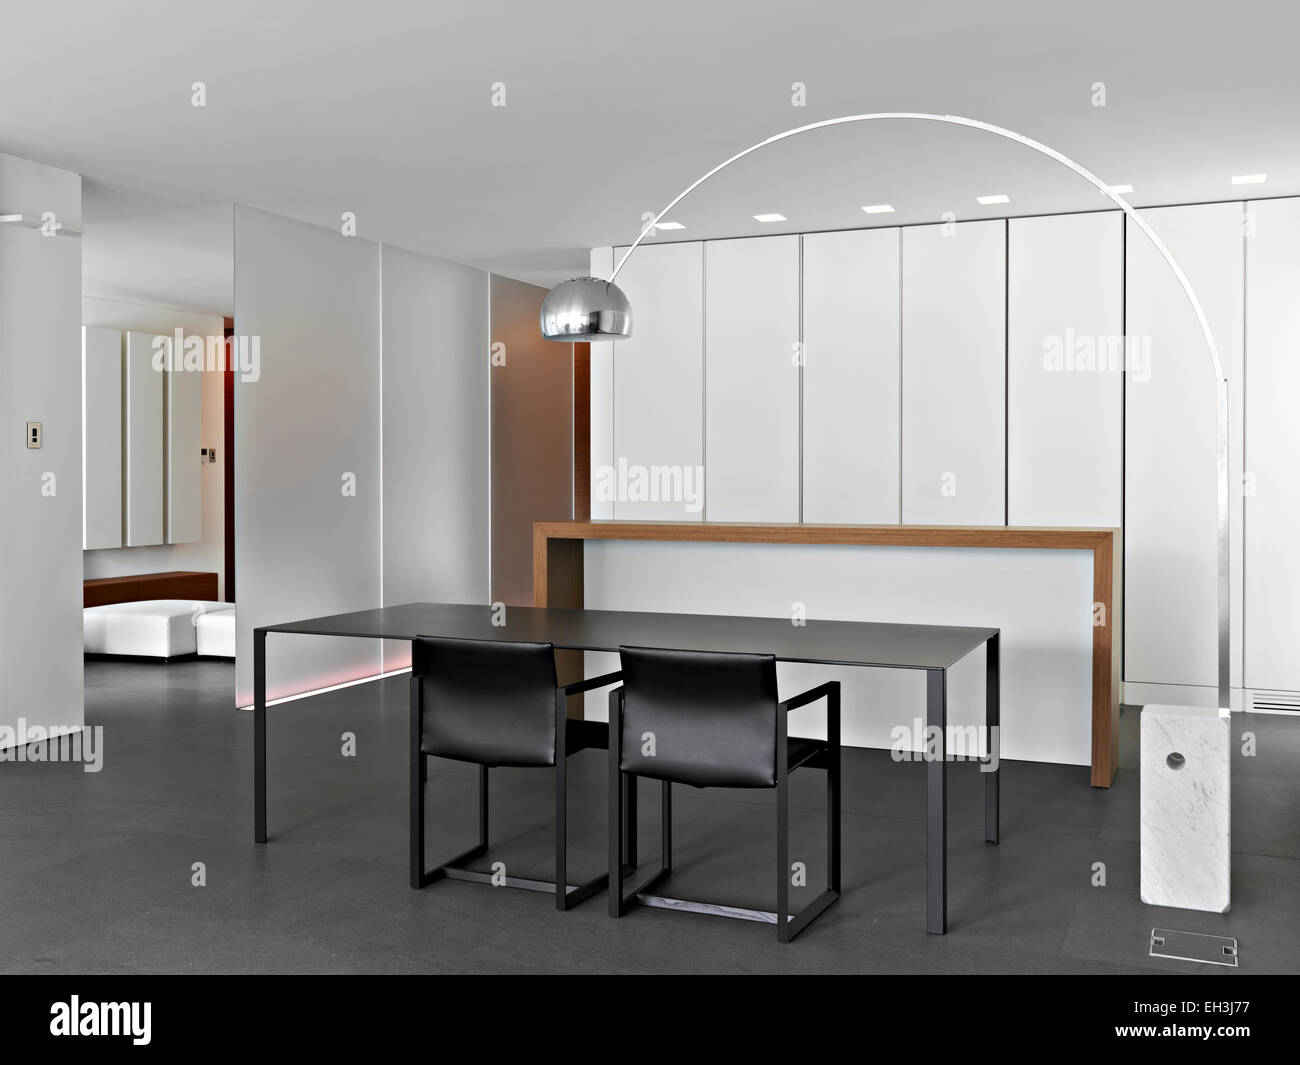 Interior View Of A Modern Dining Room With Dining Table In Foreground Stock Photo Alamy